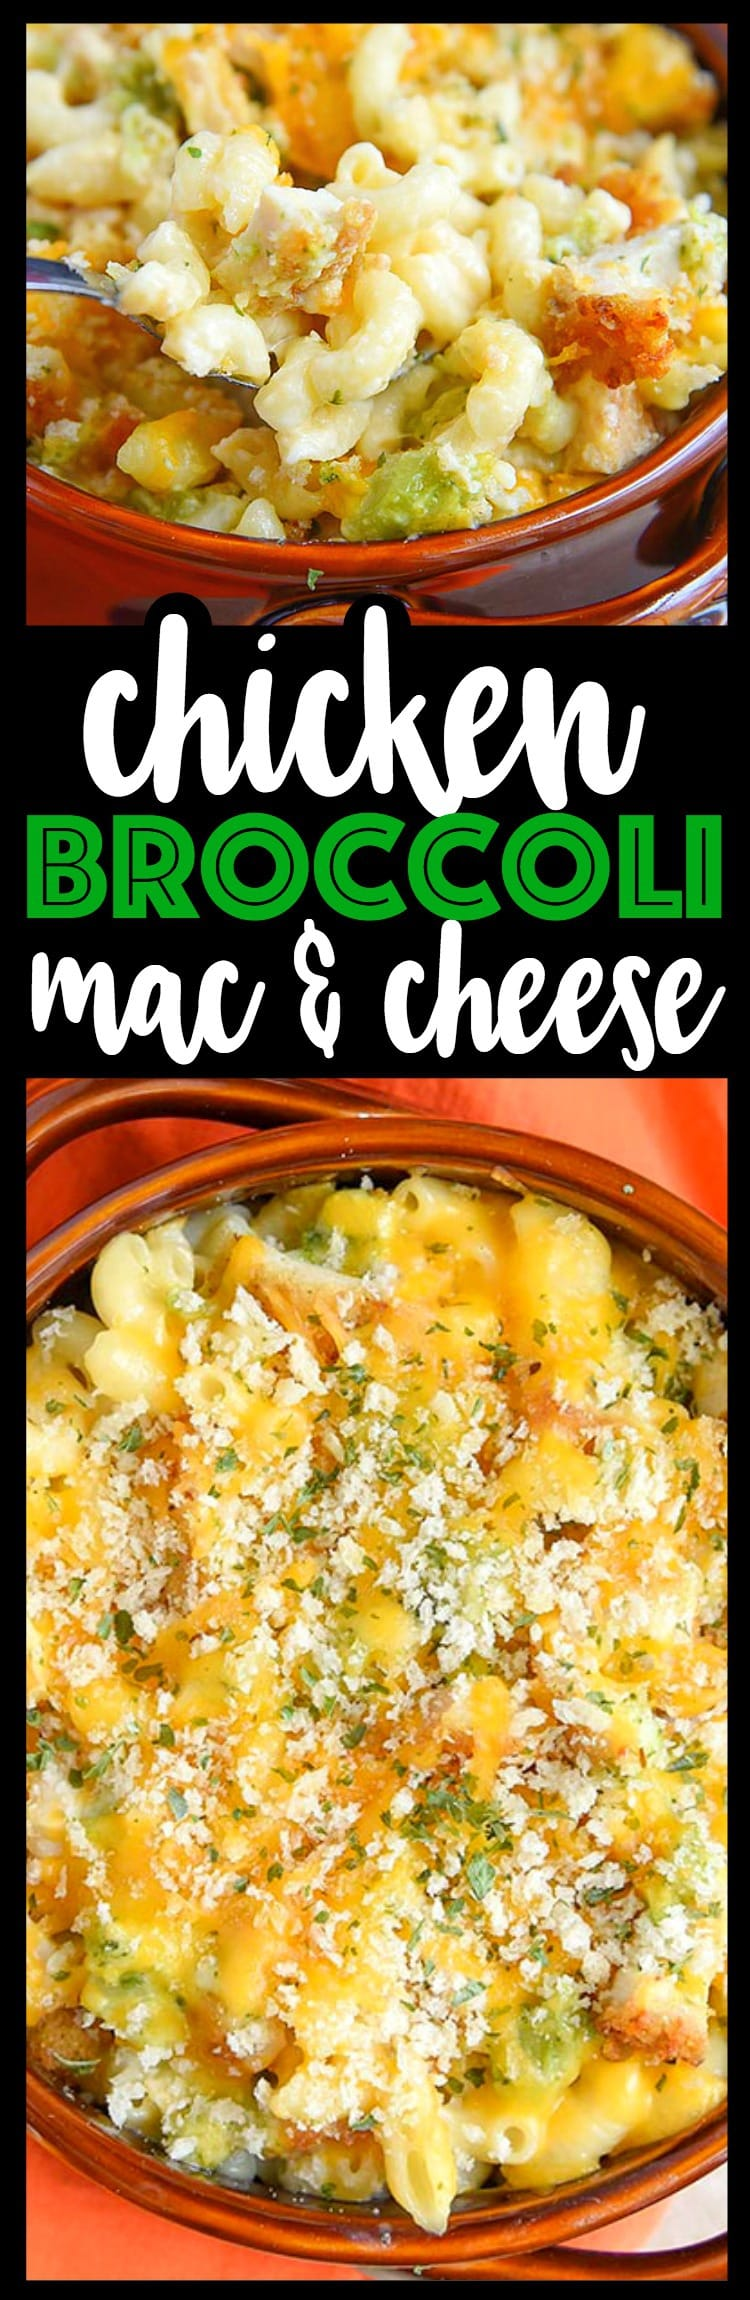 cheesy chicken and broccoli bake baked mac and cheese recipe easy old fashioned macaroni and cheese quick and easy dinner recipes for family